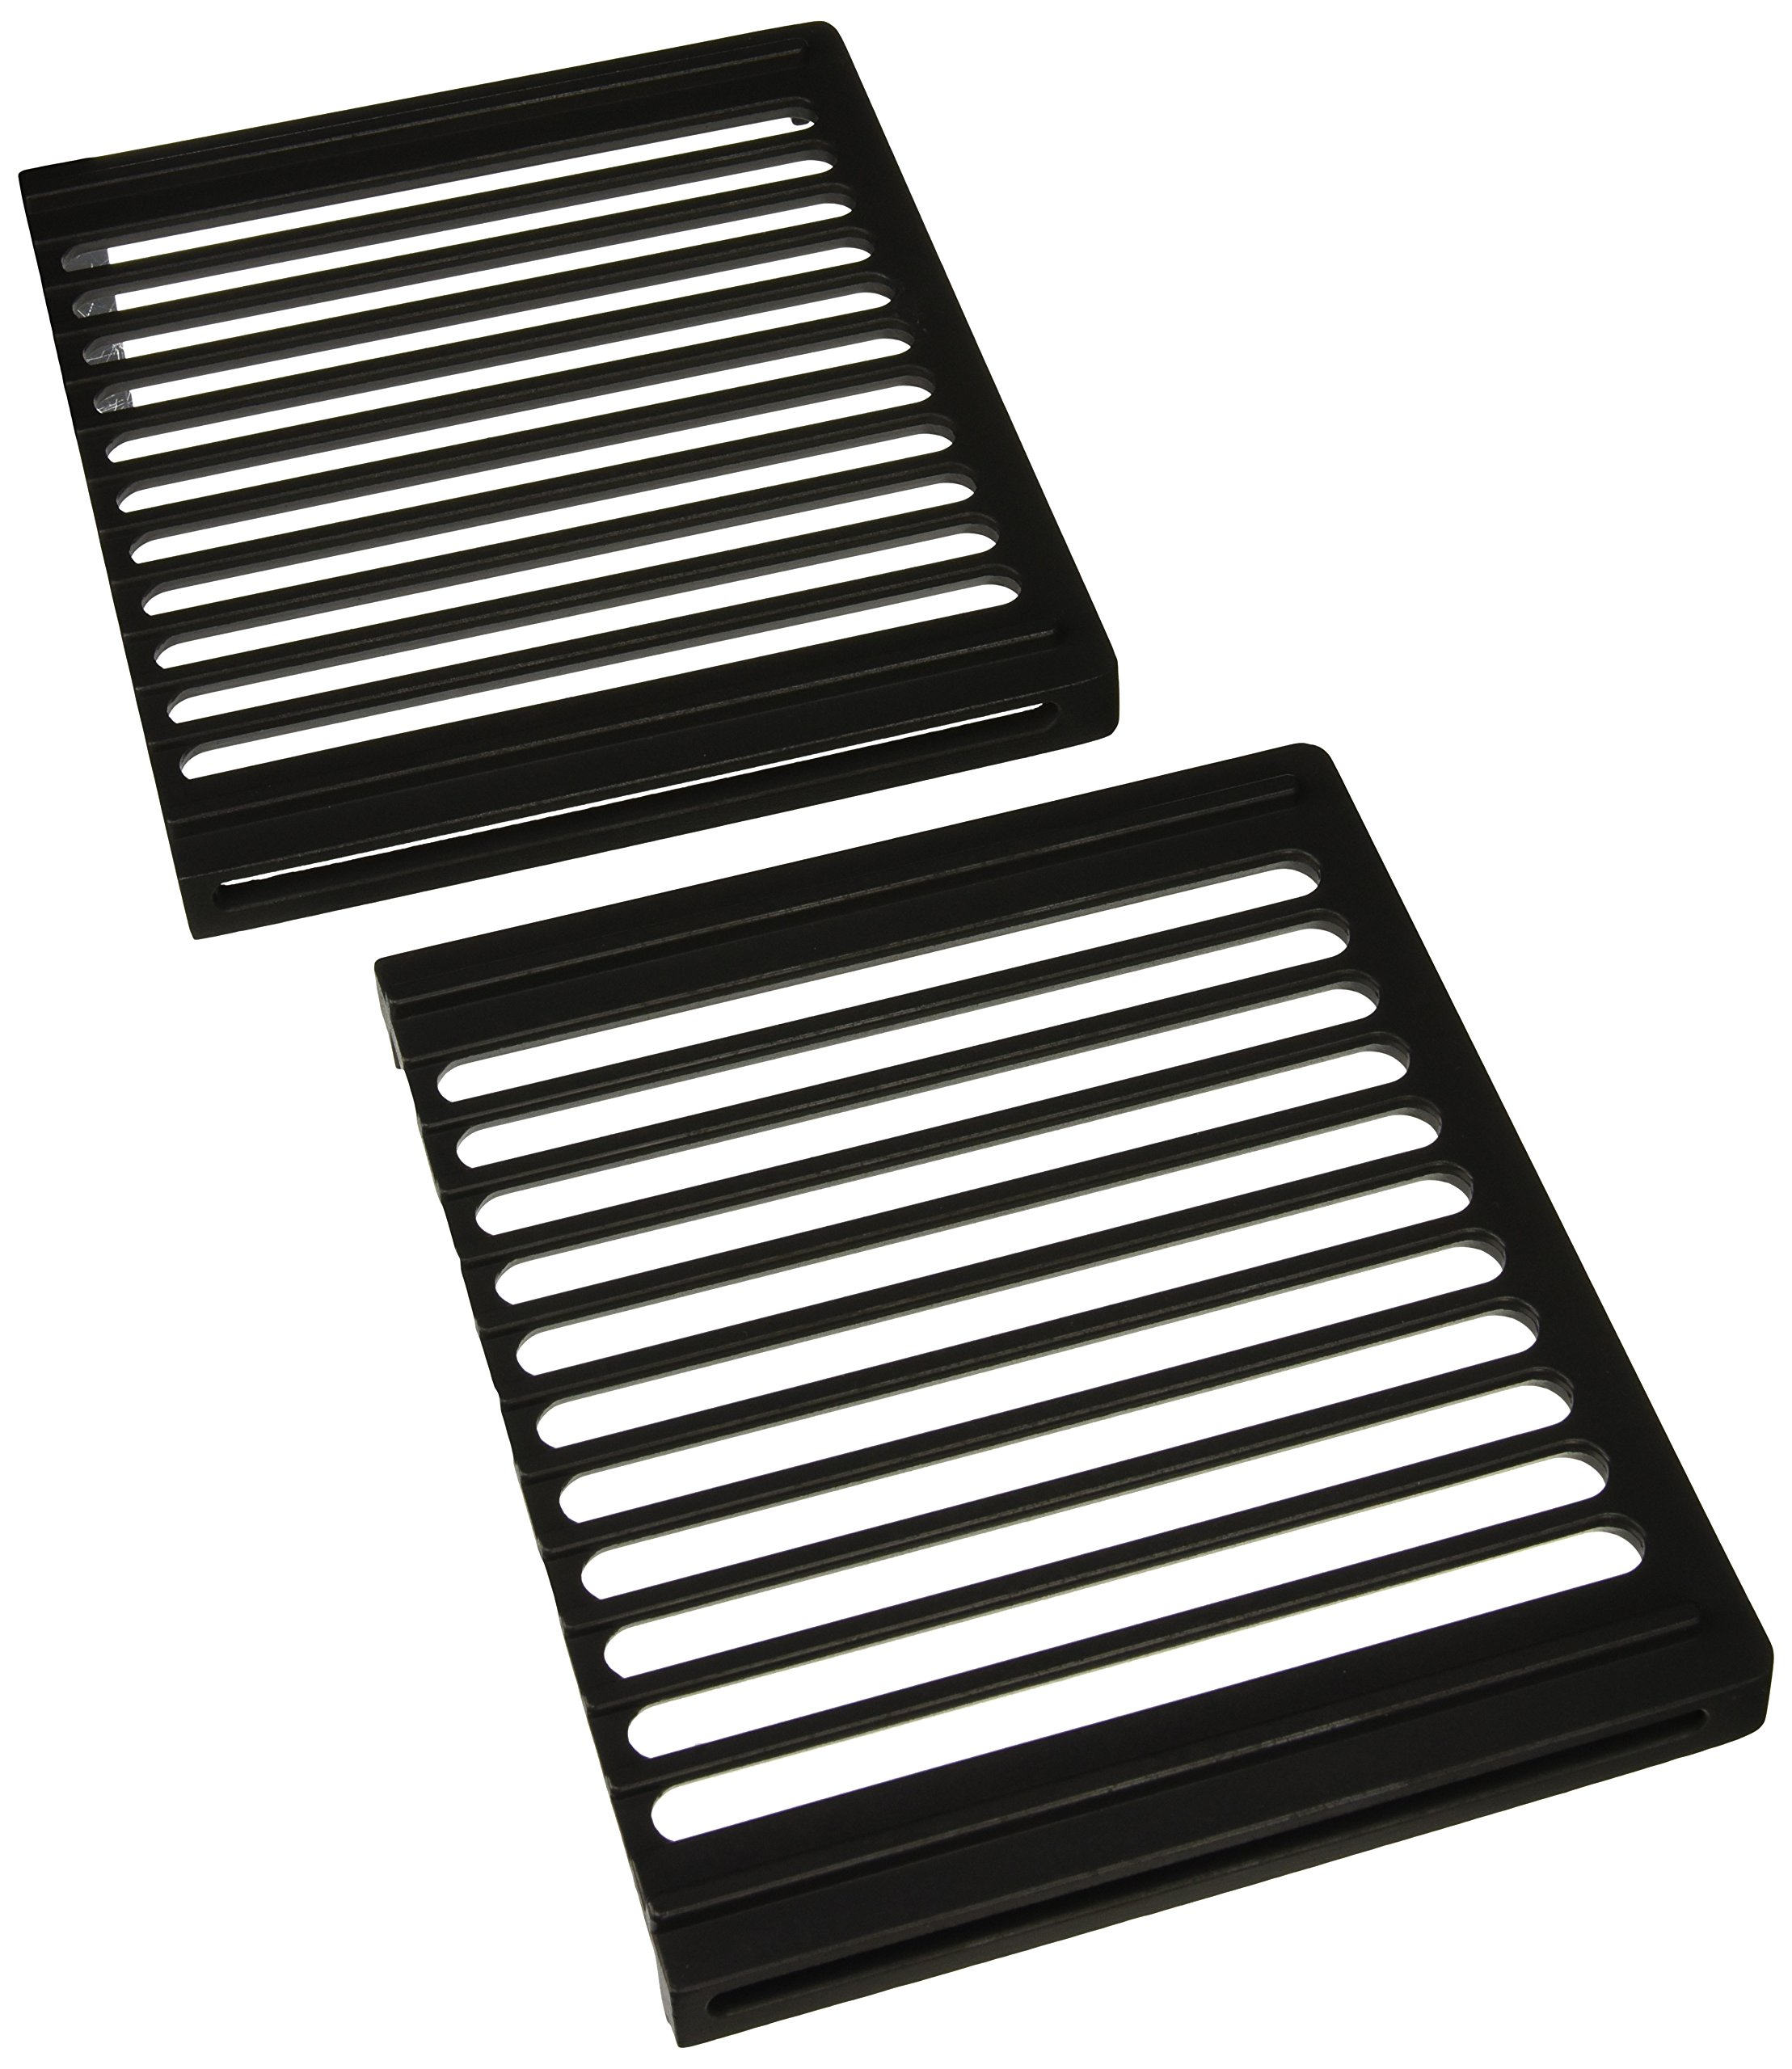 Whirlpool Part Number 12001178: GRATE-GRIL